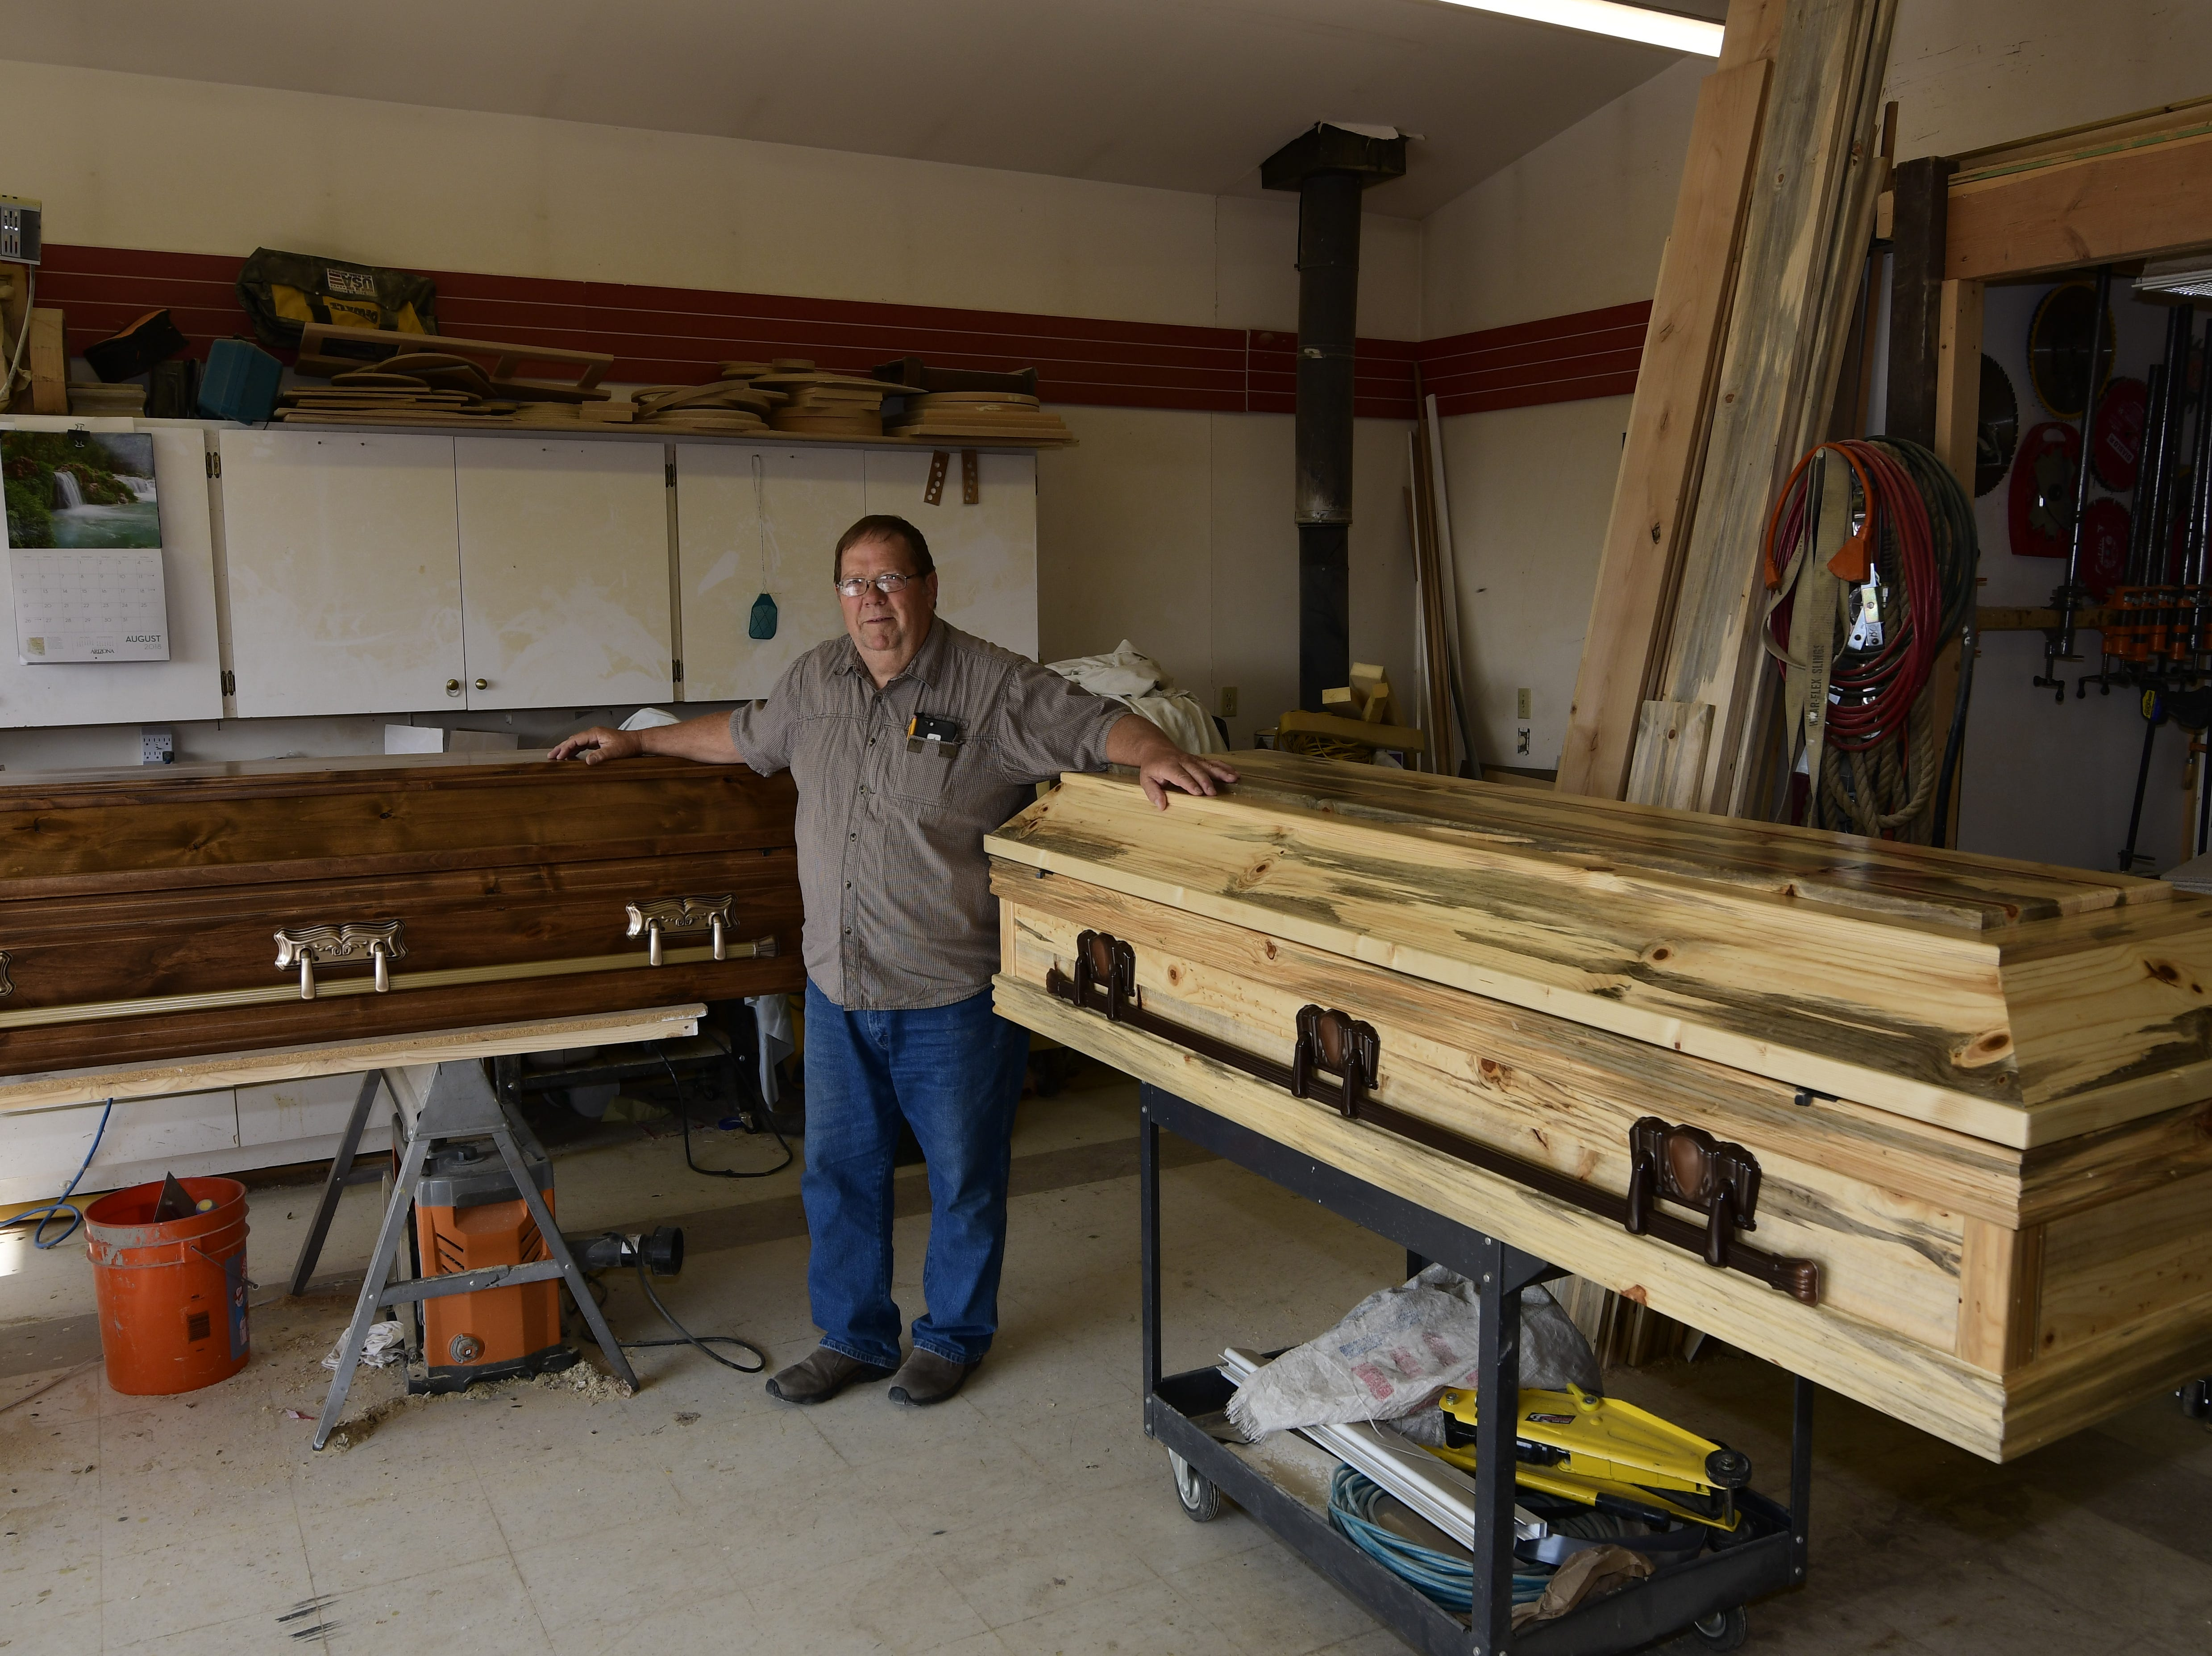 Brad Opheim with two of his creations - a knotty alder casket on the left and a blue pine casket on the right.